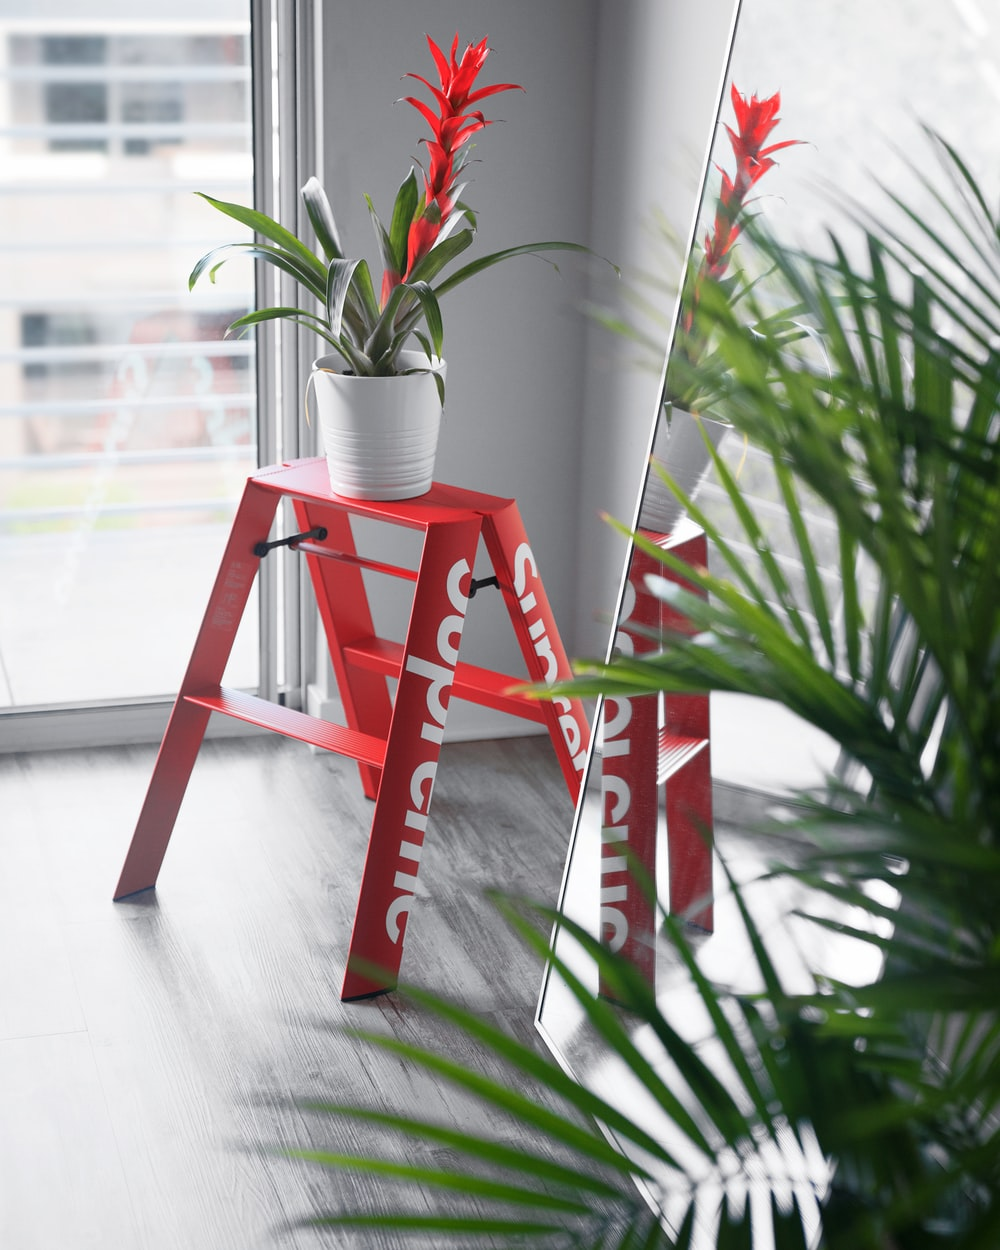 red potted plant on orange ladder